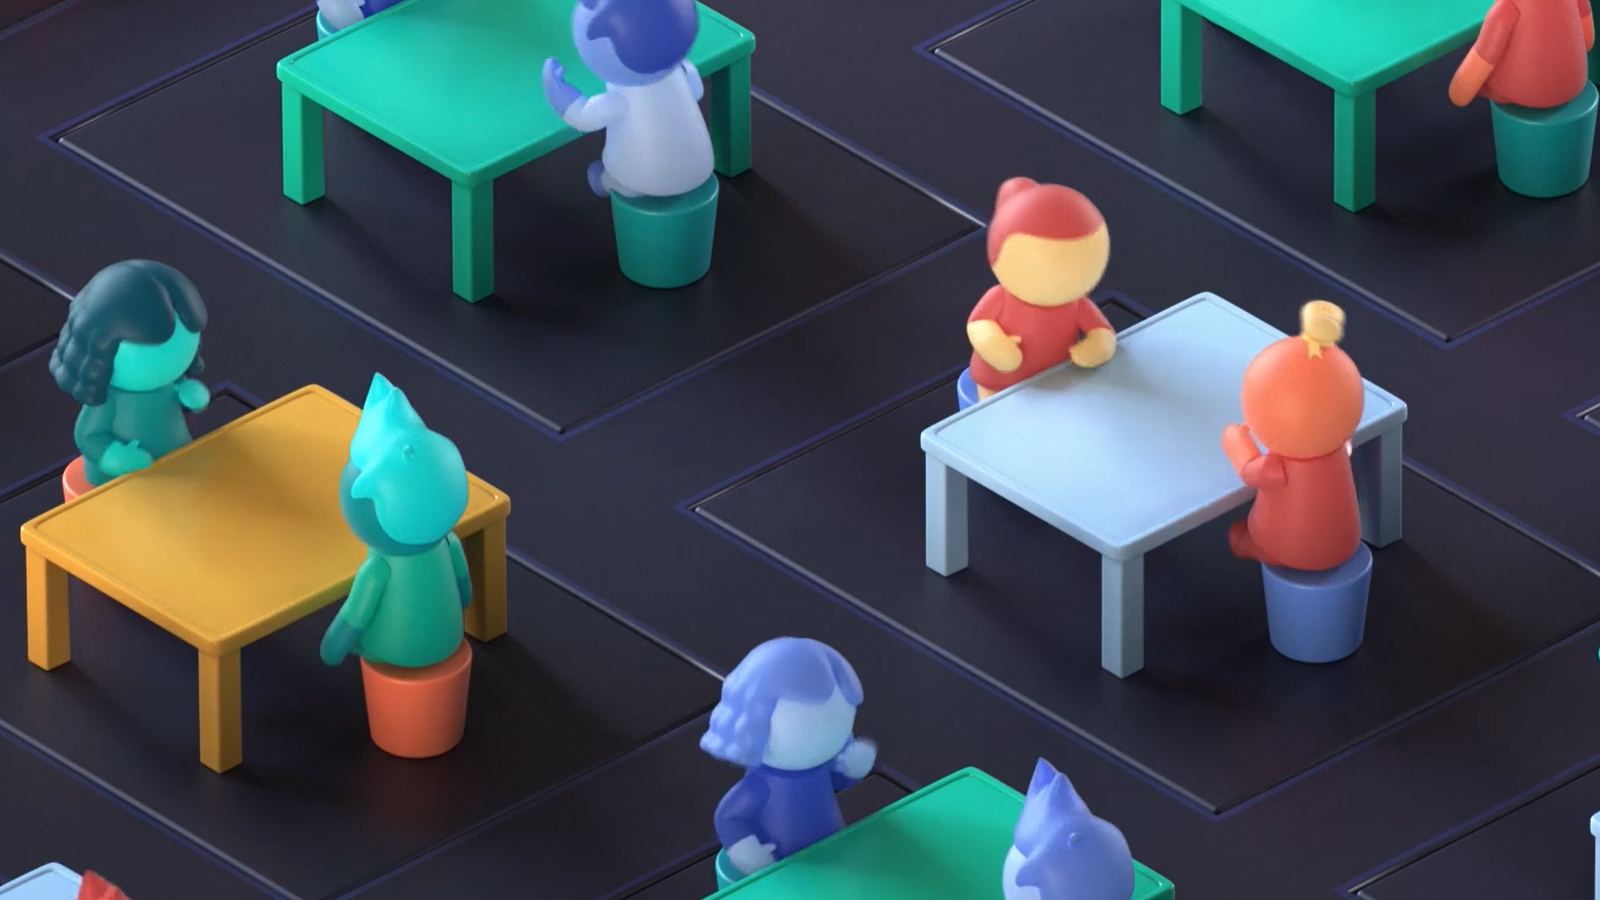 colourful characters sitting across each other, in pairs talking animatedly. The tables are blue, green and yellow. The people are CG, with no facial details and feel like toy characters, with skin colours of blues, greens, reds and hair to match.